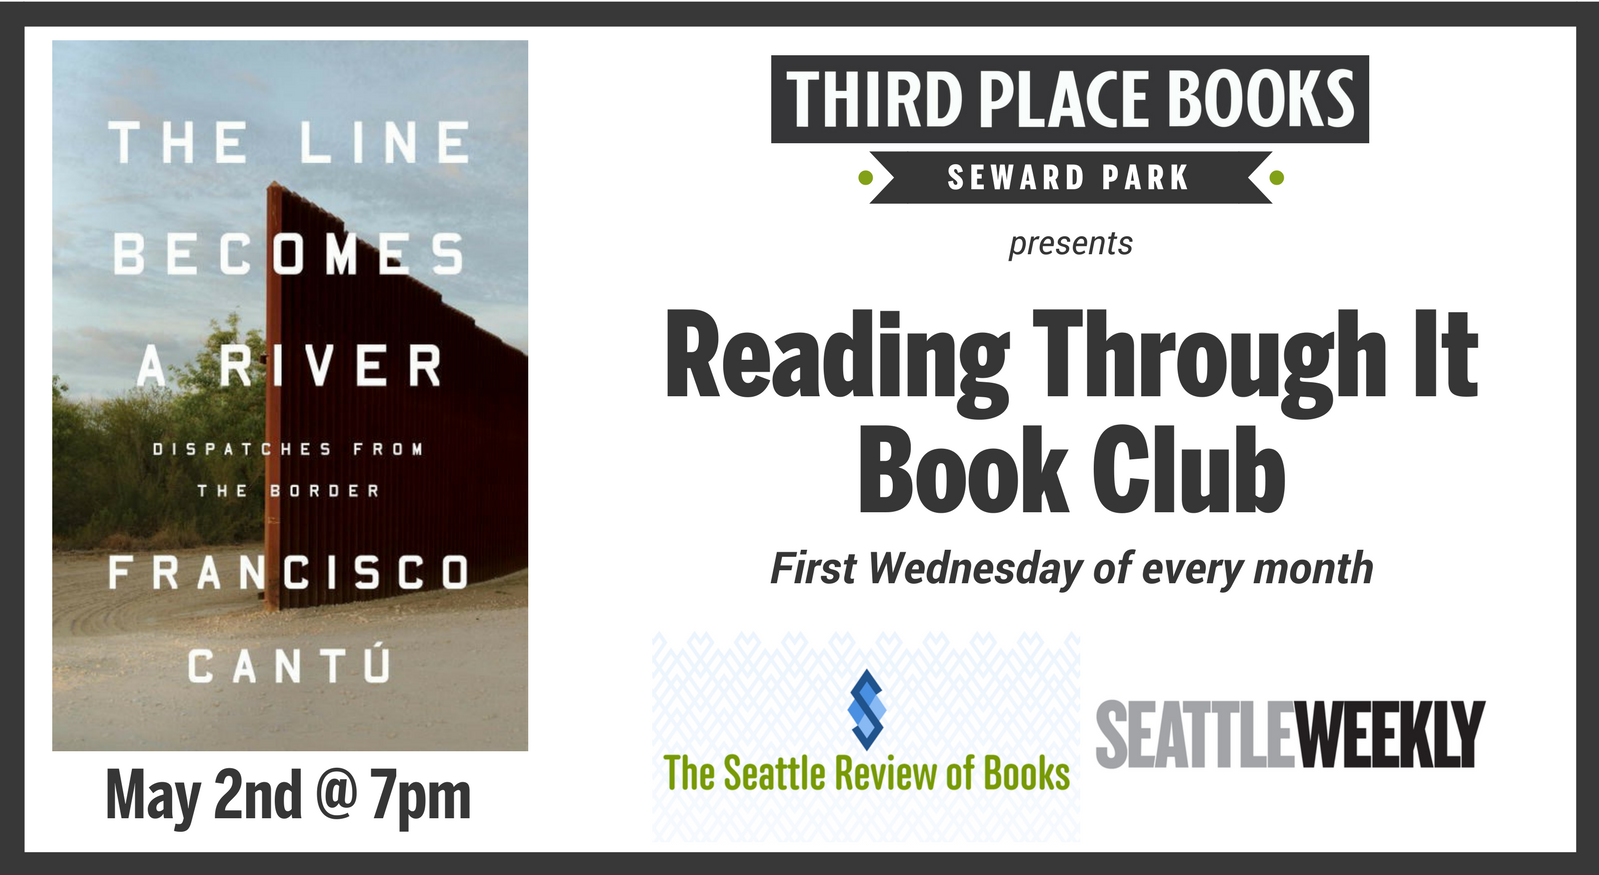 Reading Through It Book Club discussing The Line Becomes a River on Wednesday, May 2nd at 7pm